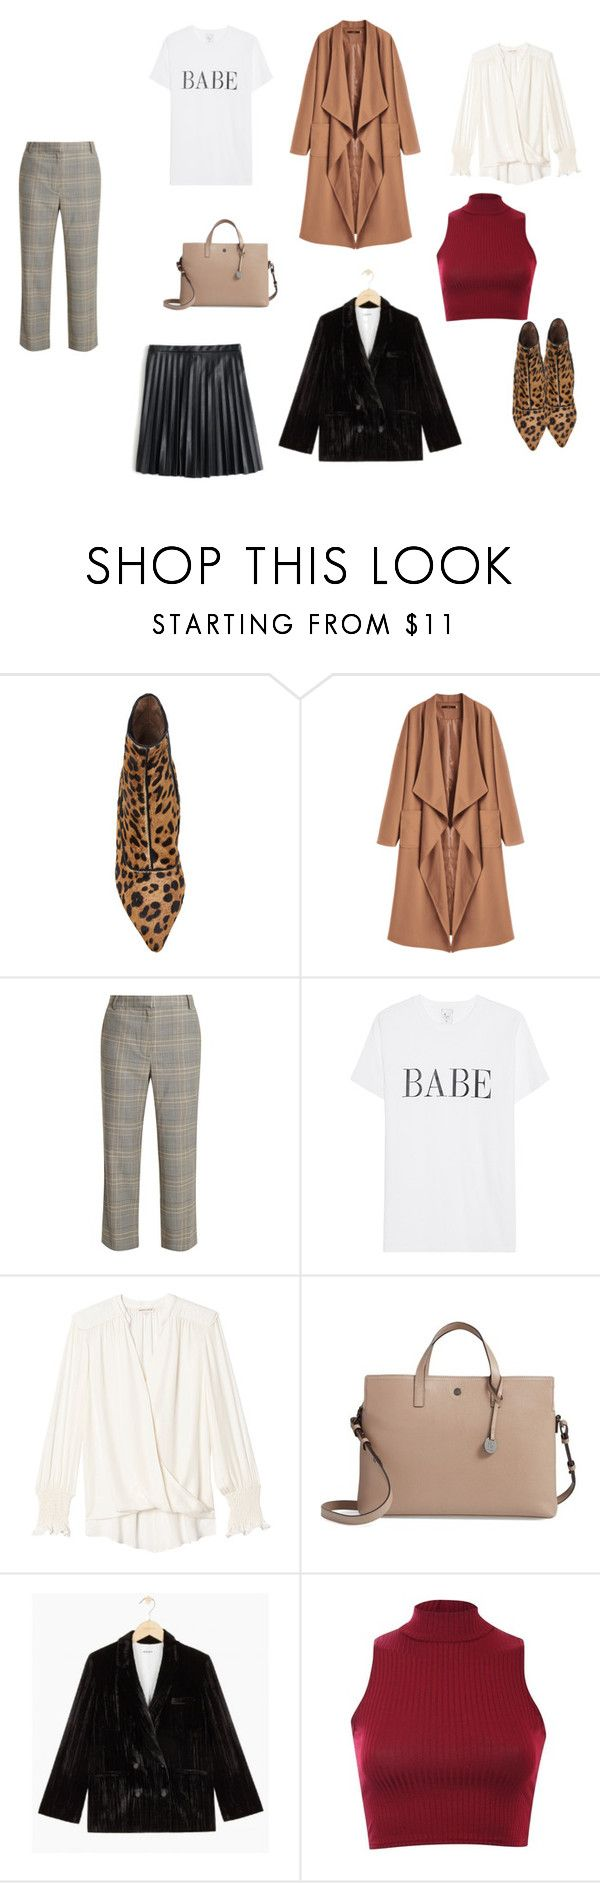 """""""to buy"""" by mgomenuyk on Polyvore featuring мода, Tabitha Simmons, TIBI, Rebecca Taylor, Lodis, Pilot и J.Crew"""